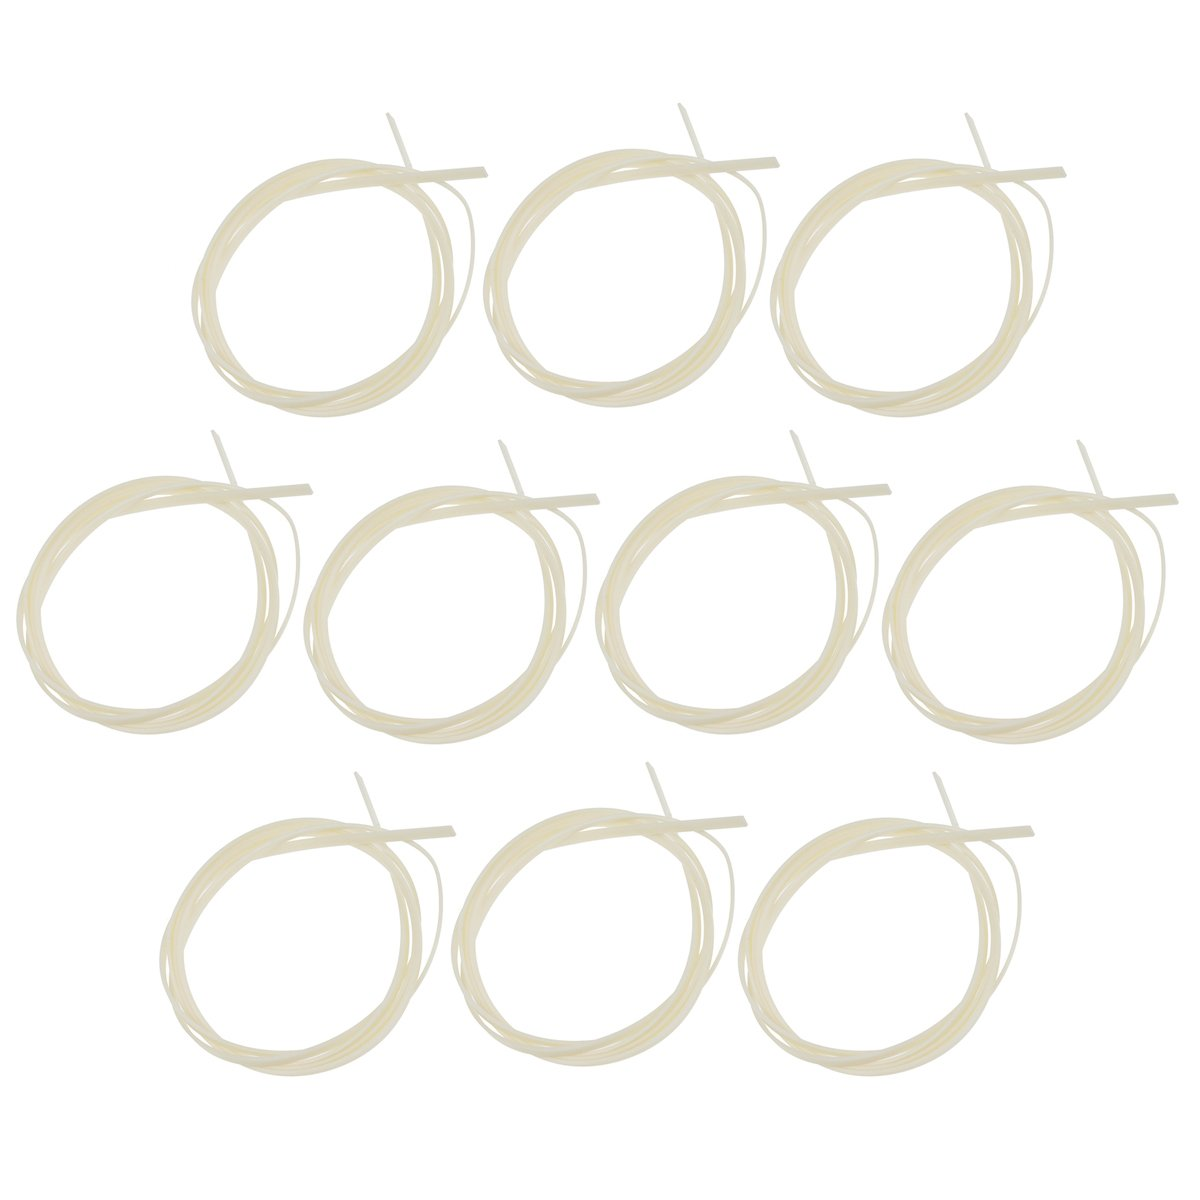 Kmise Guitar Binding Purfling Strip for Guitar Body Project Supplies Plastic 1650 6 1.5mm 10 Pcs